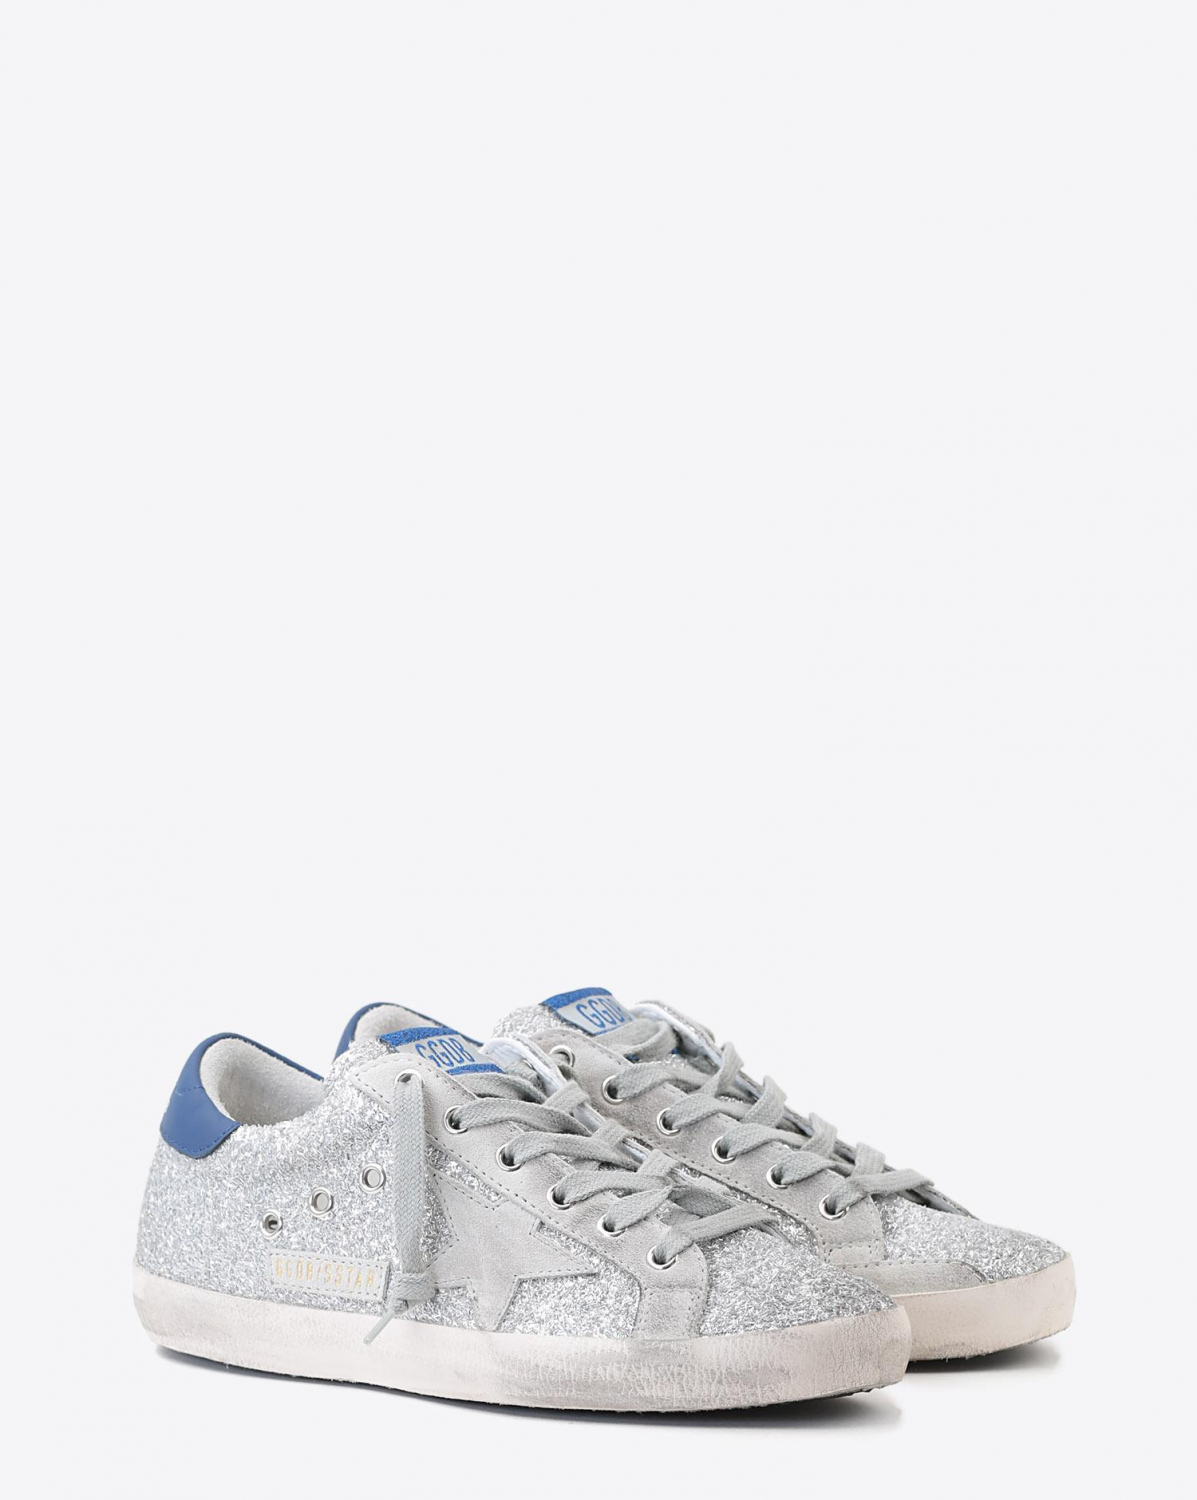 Golden Goose Woman Pré-Collection Sneakers Superstar - Silver Glitter Blue- Ice Star